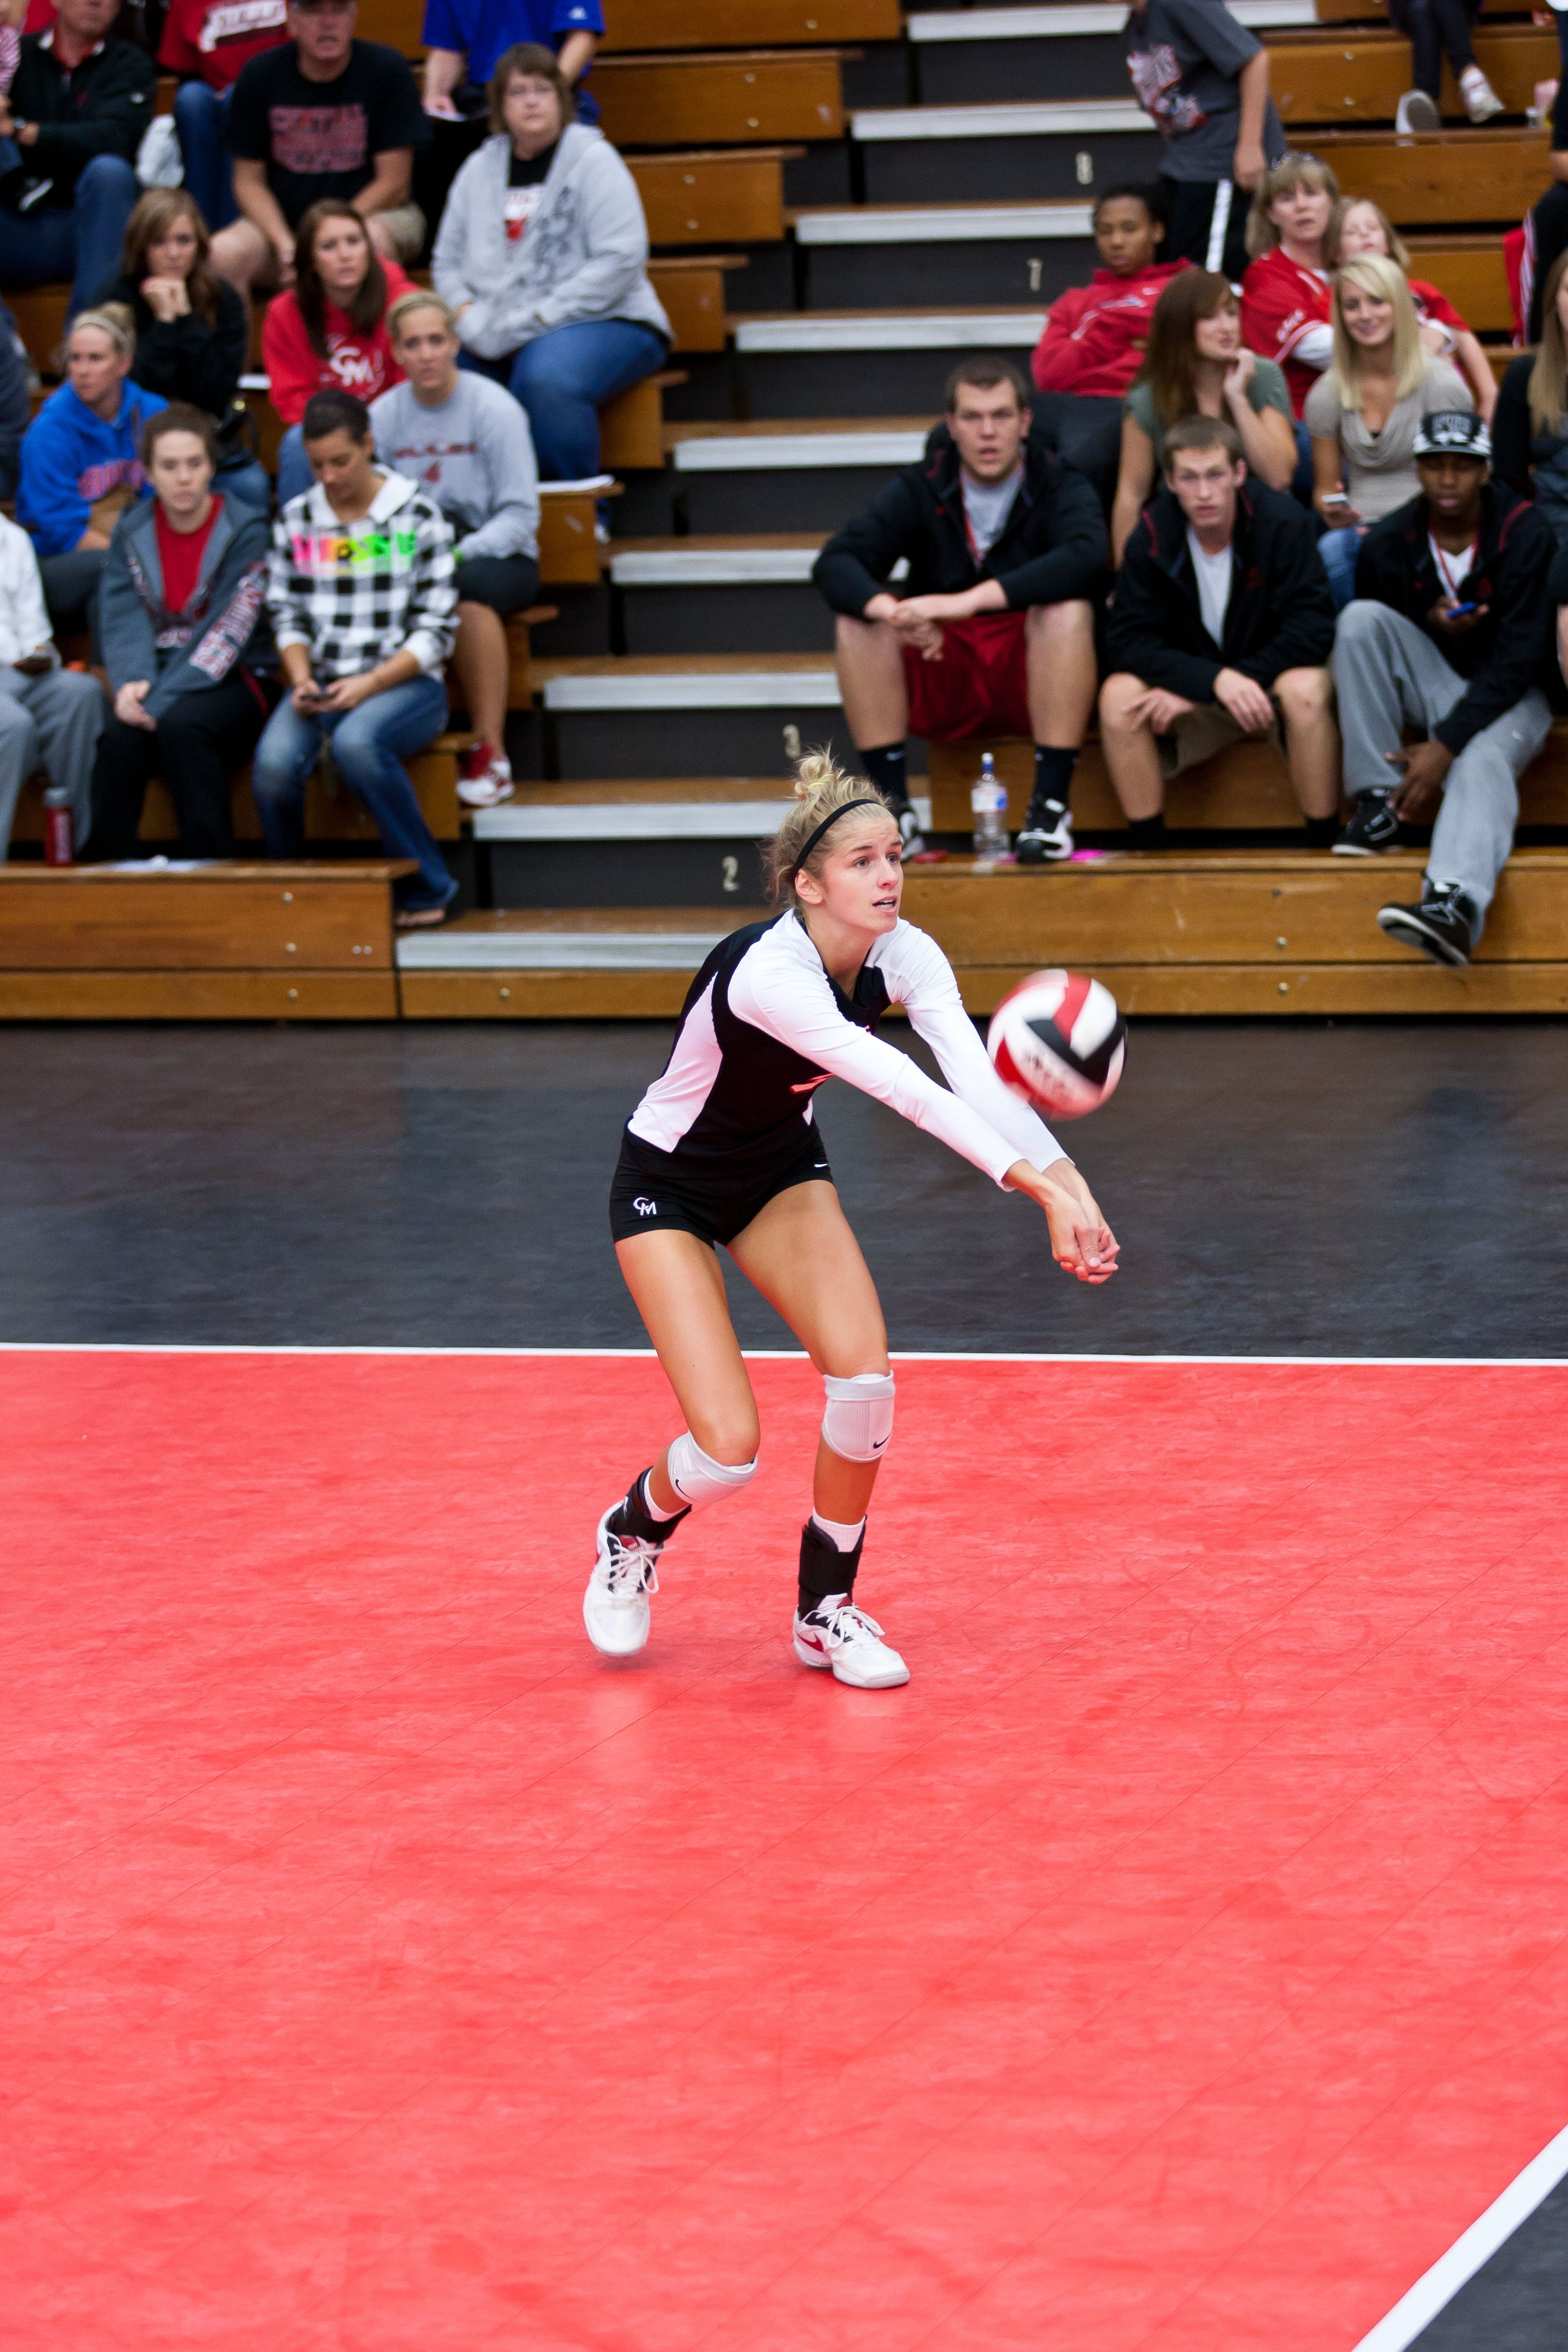 Allie Huffman Was Named The Miaa Player Of The Year Being The First Player From Ucm To Win This Award Since Daria Mcconnell In 1 Volleyball Basketball Basketball Court